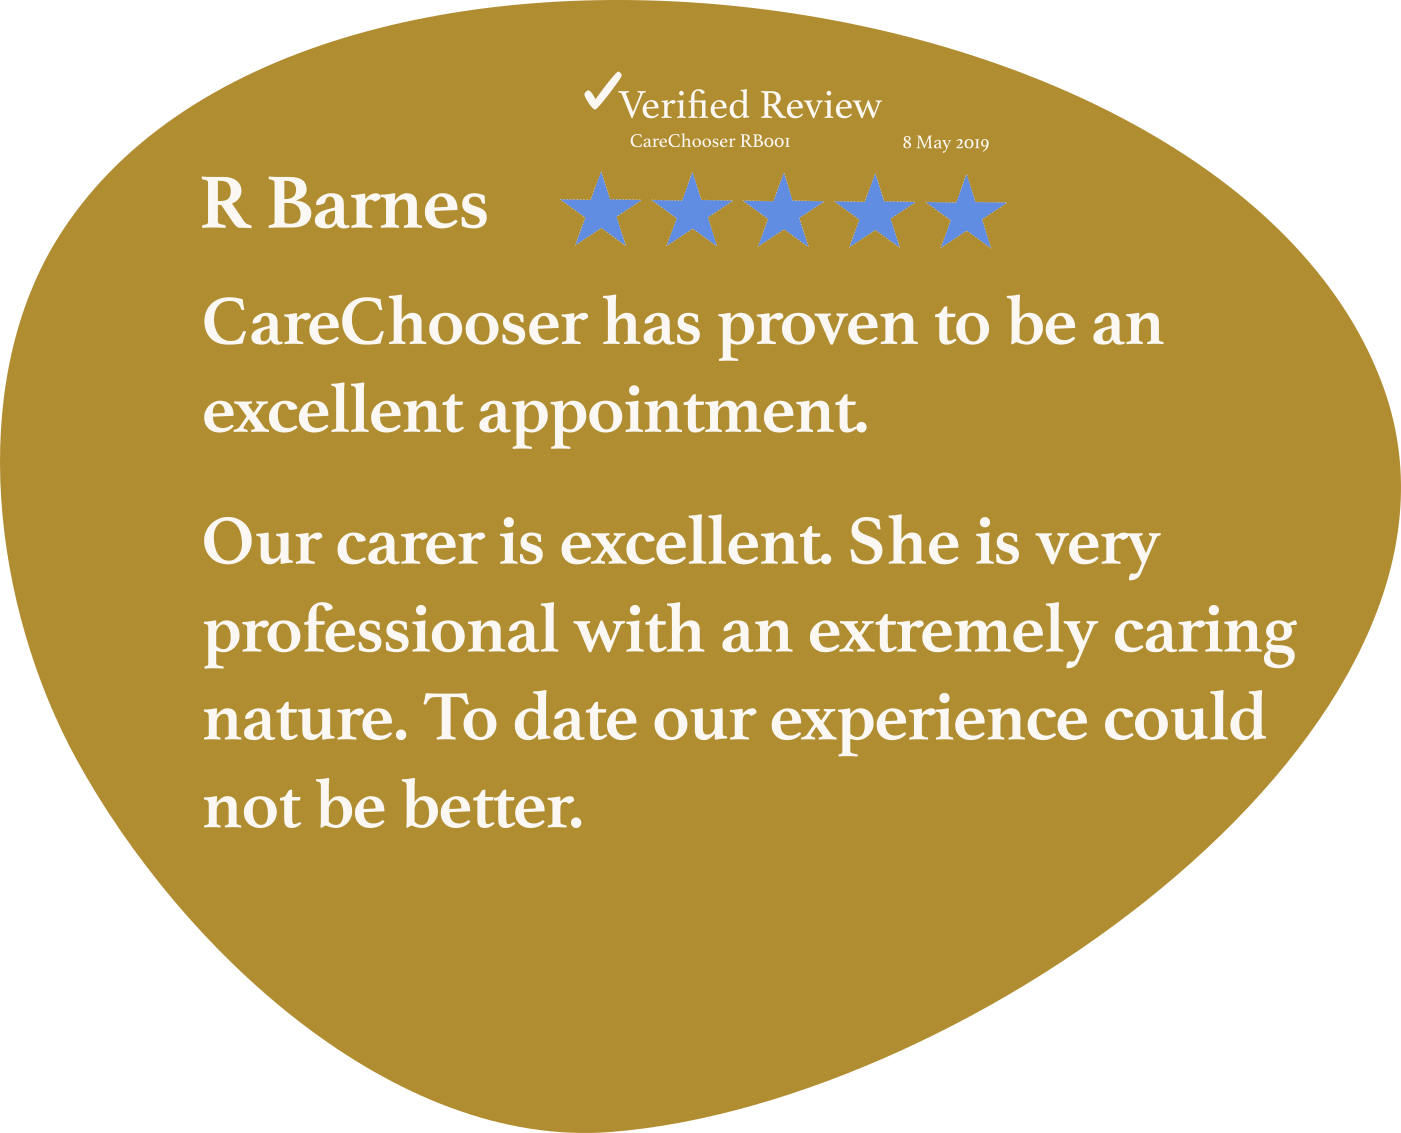 CareChooser home care review - R Barnes3 copy.png